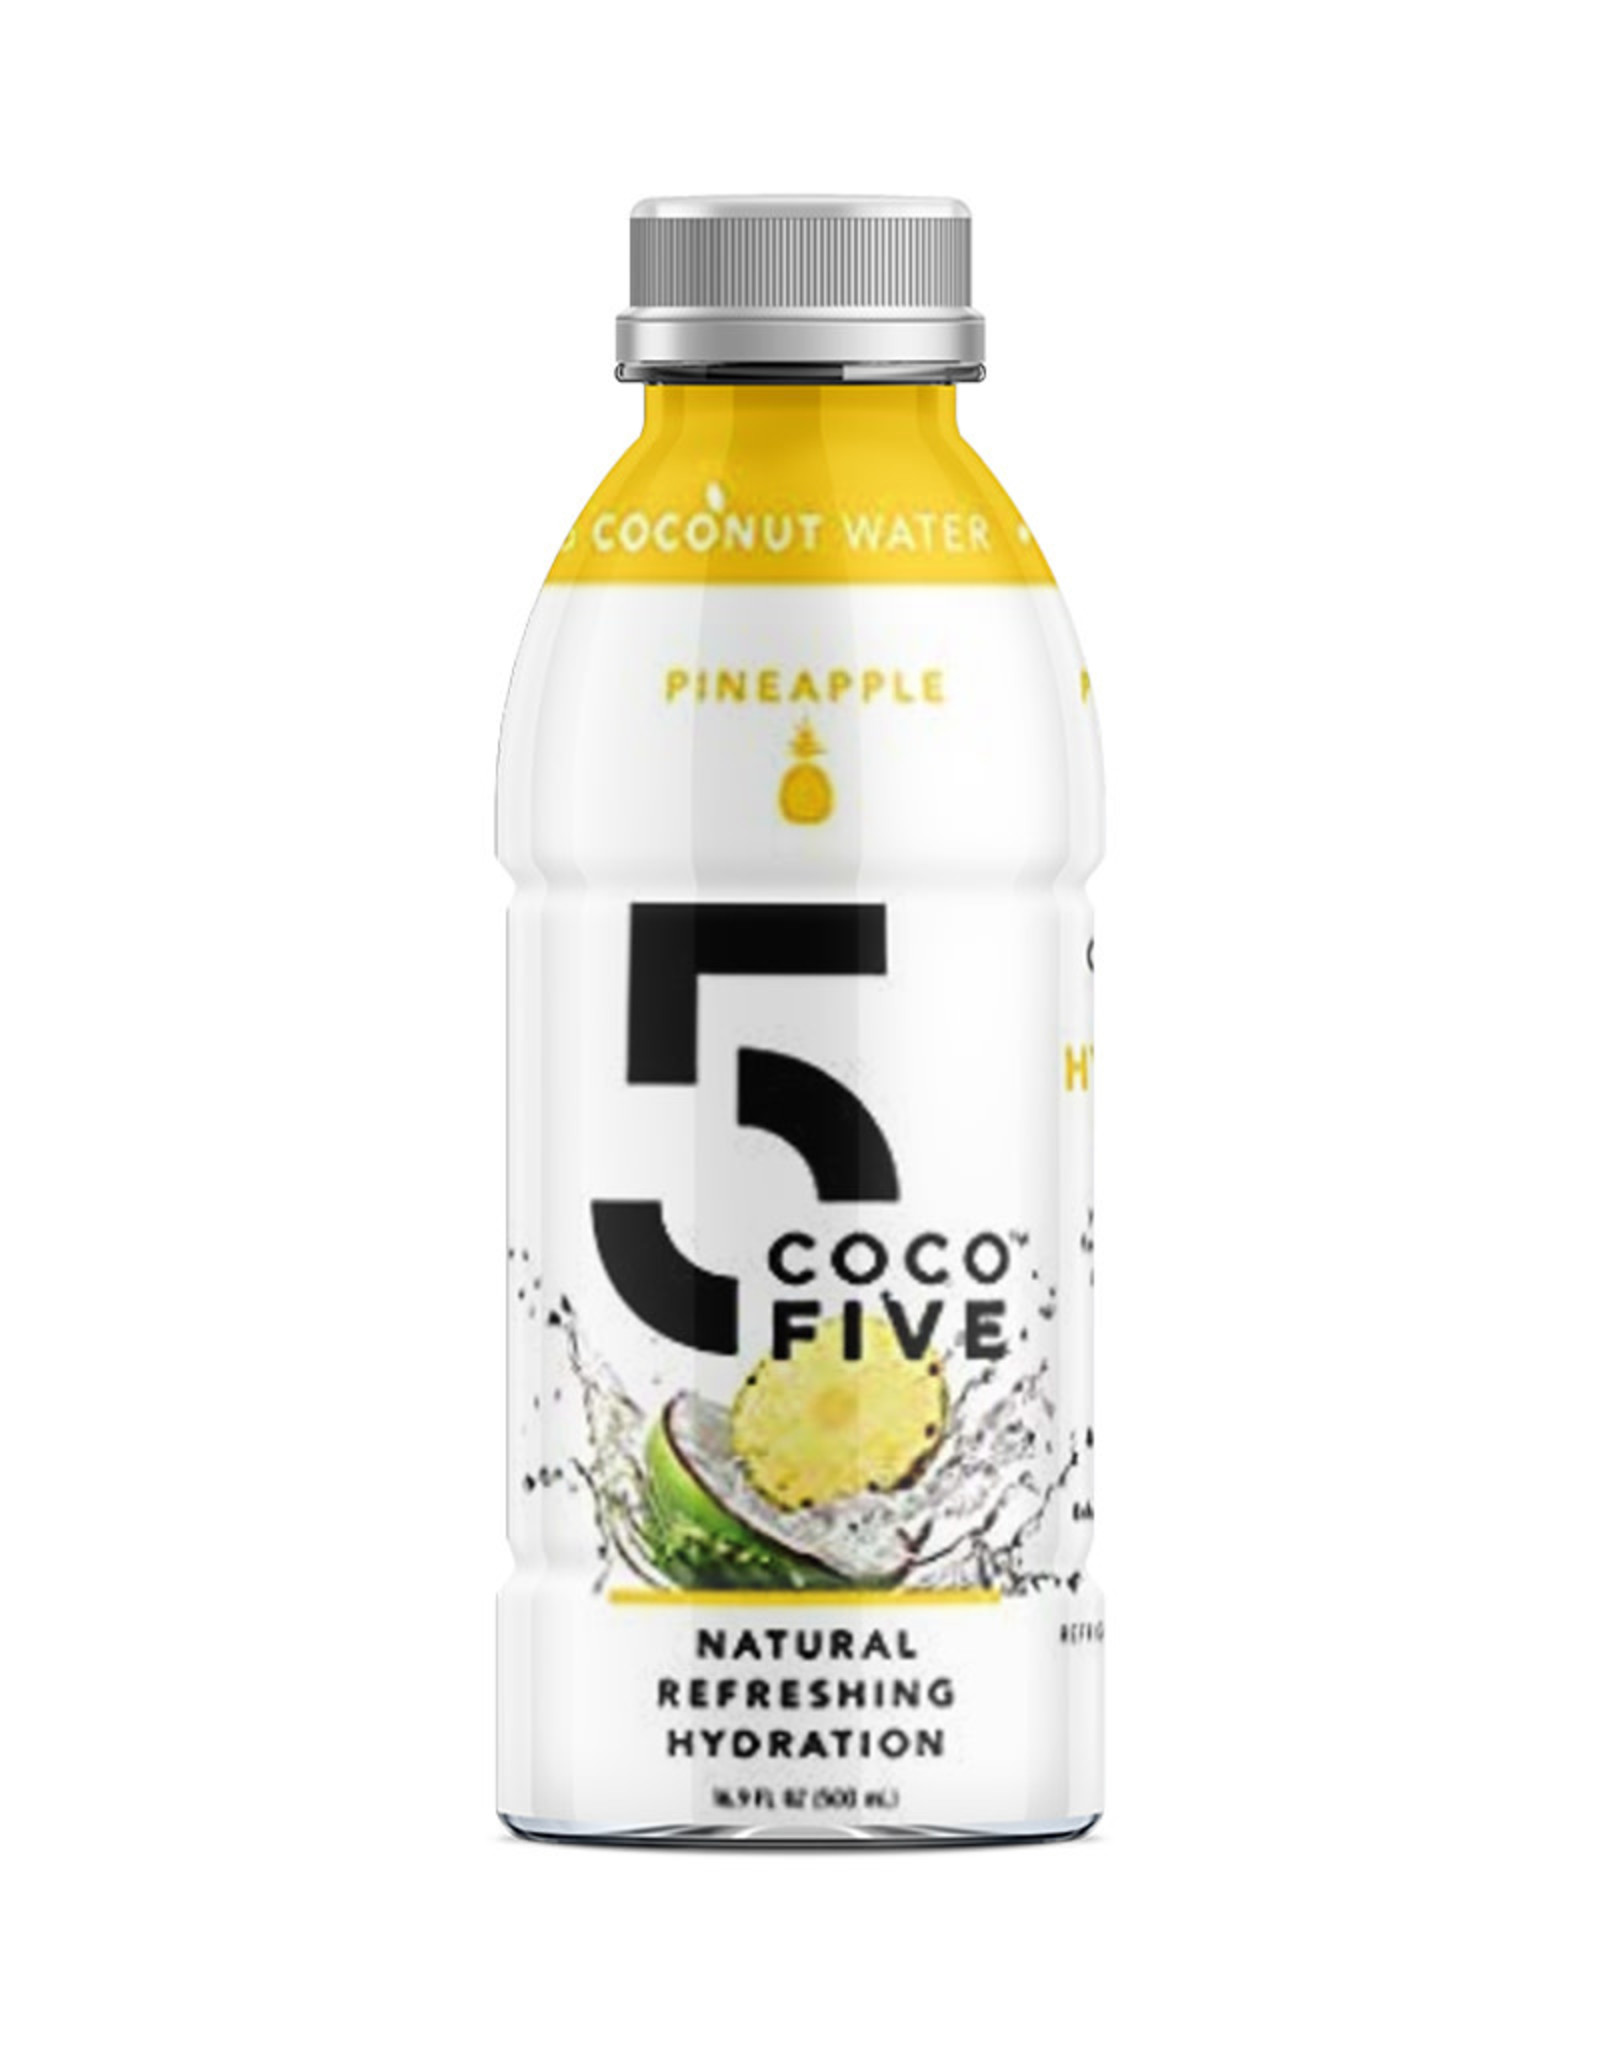 Coco5 Coco5 - Coconut Water, Pineapple (500ml)